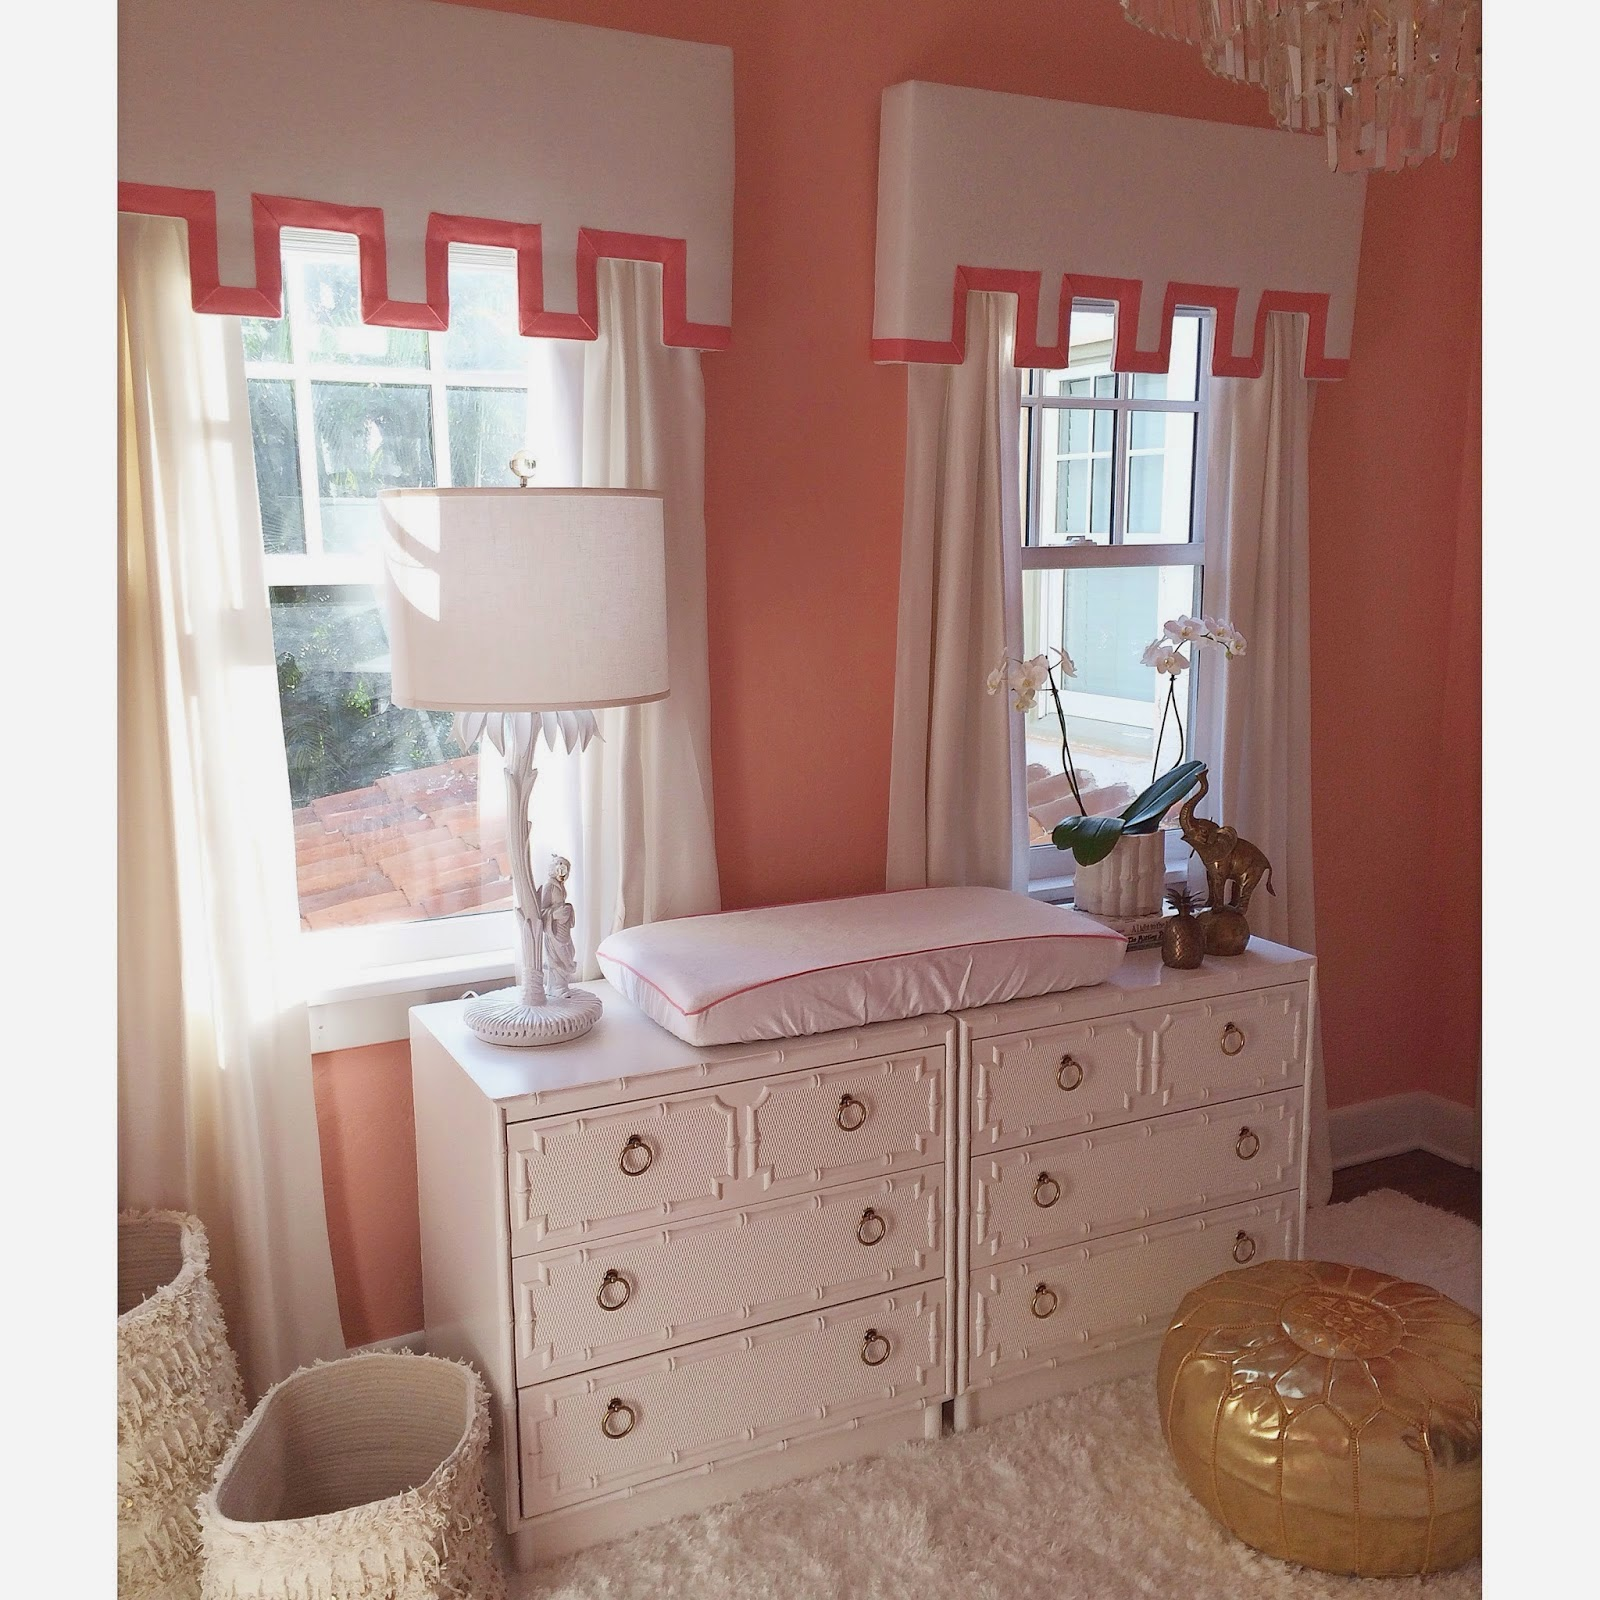 custom-drapes-palm-beach-chic-nursery